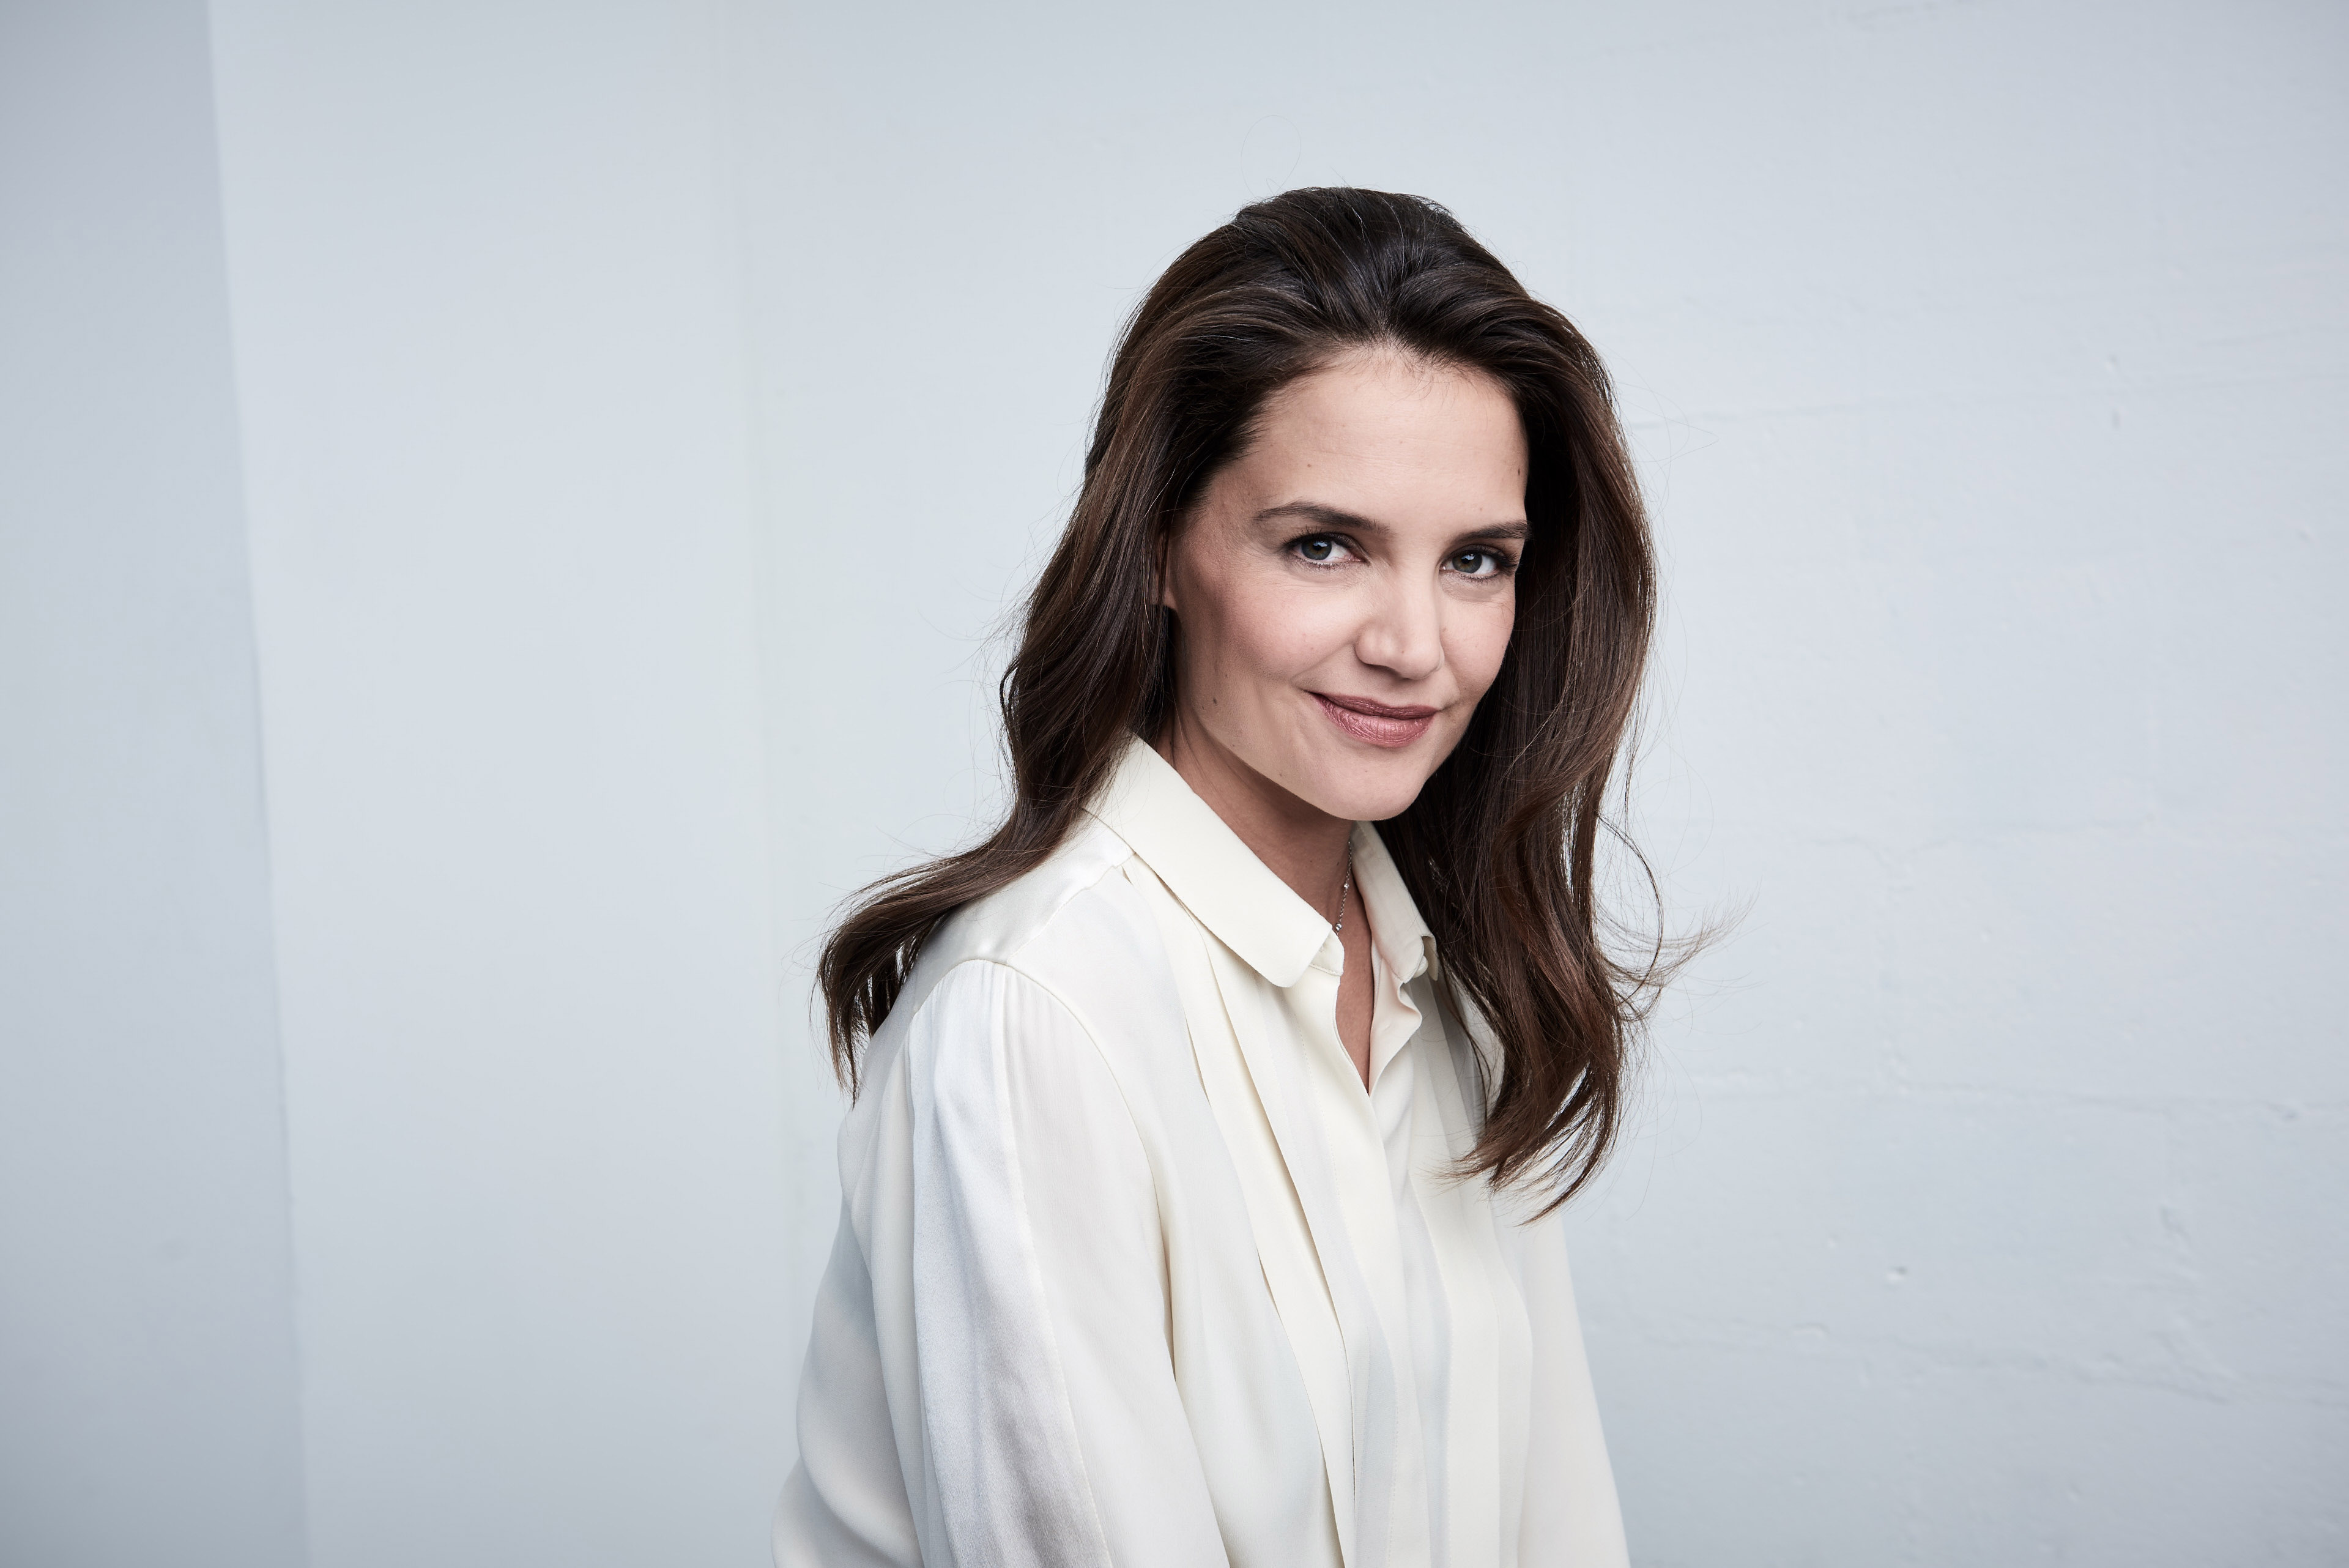 Katie Holmes from  All We Had  poses at the Tribeca Film Festival Getty Images Studio on April 16, 2016 in New York City.